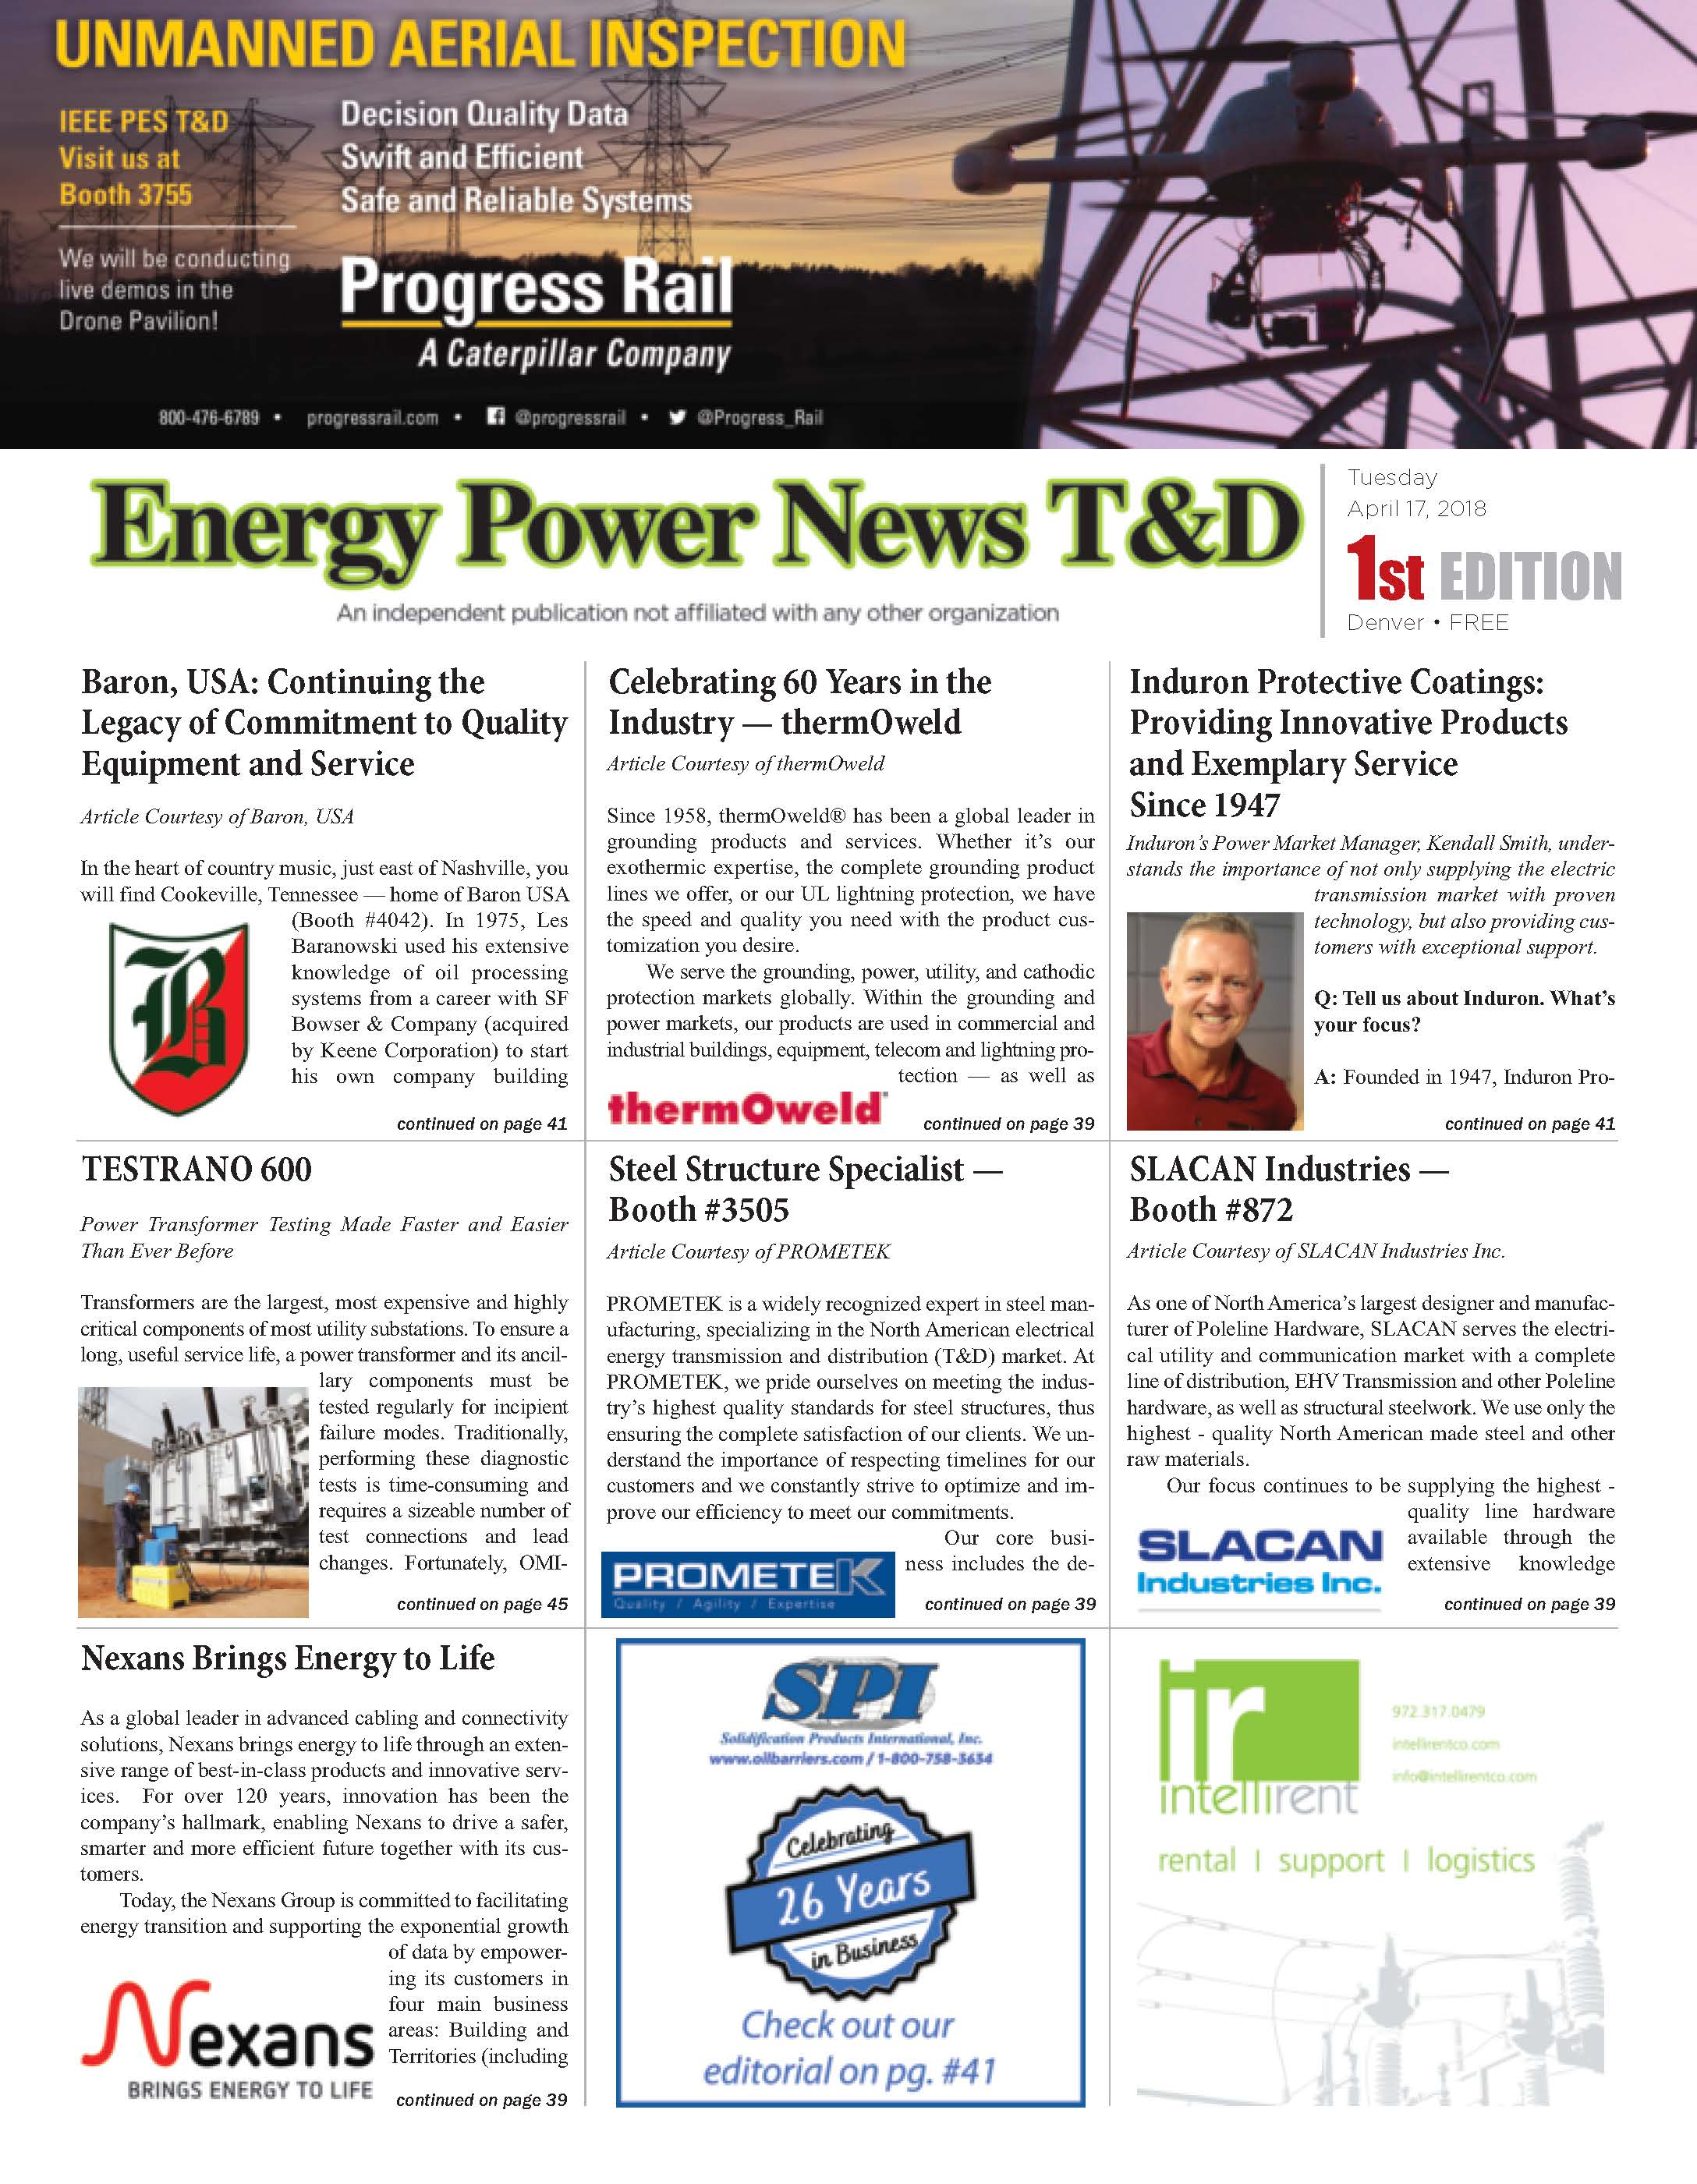 Energy Power News T&D